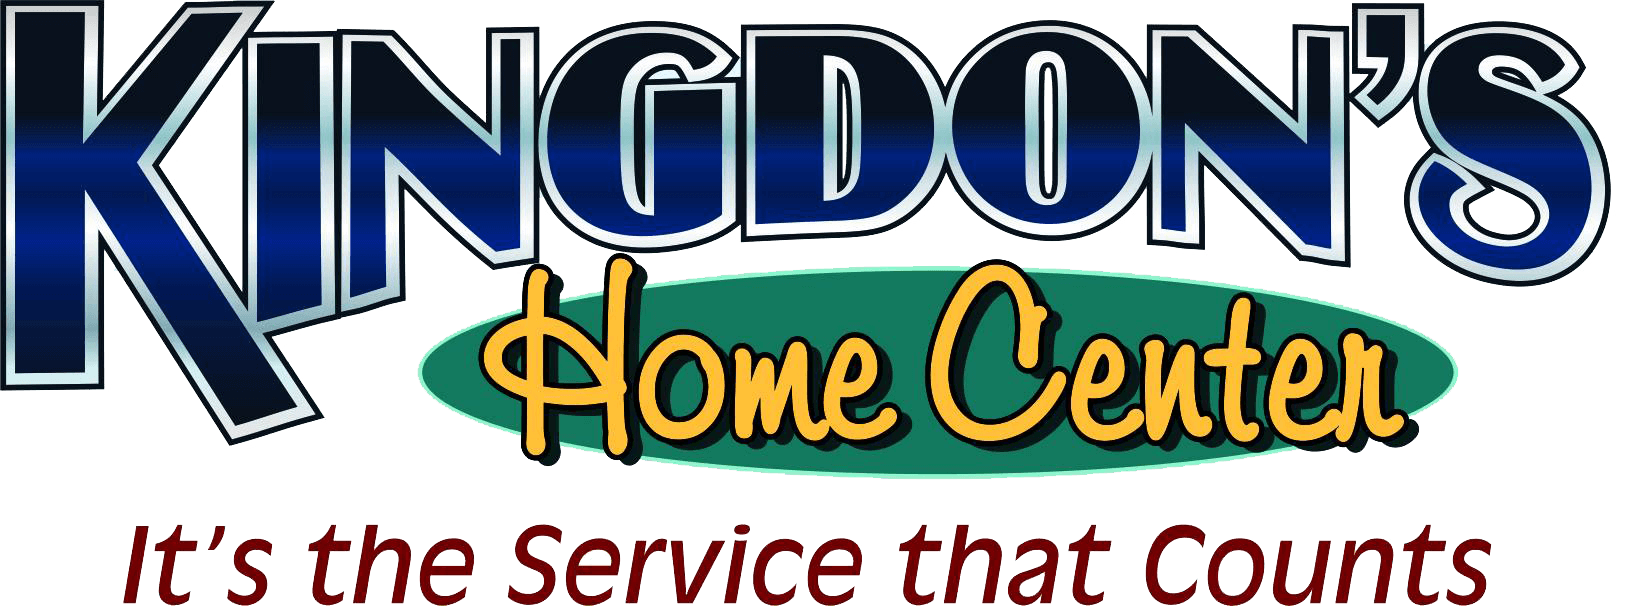 Kingdon Home Center Logo